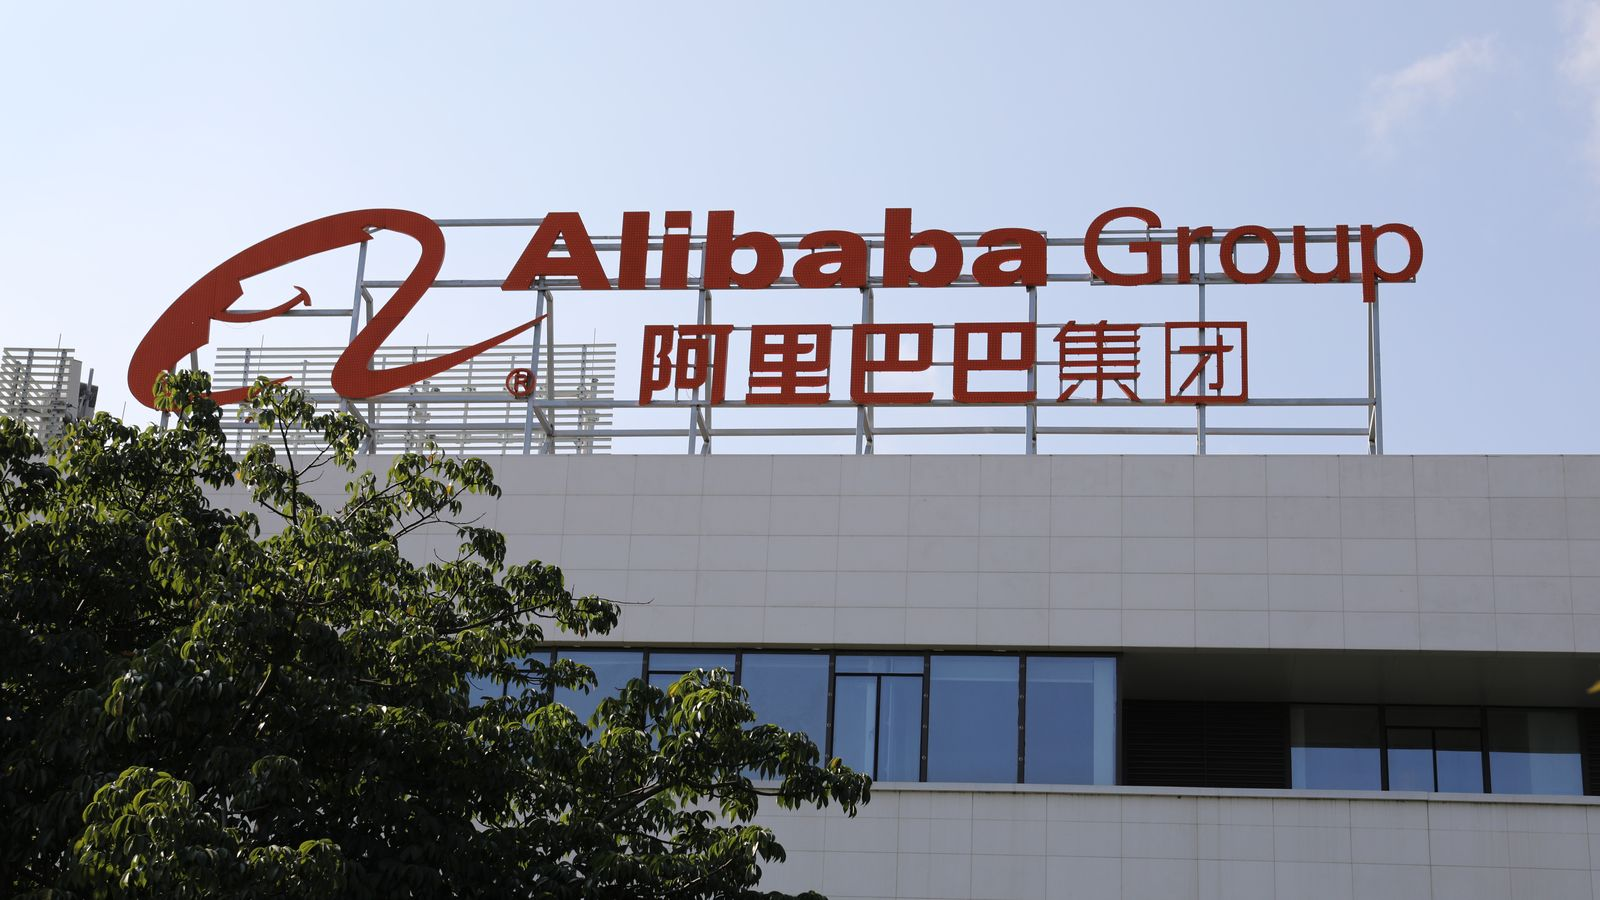 Baba Stock 3 Big Reasons Alibaba Shares Are Struggling Today Investorplace In depth view into alibaba group shares outstanding including historical data from 2014, charts, stats and industry comps. baba stock 3 big reasons alibaba